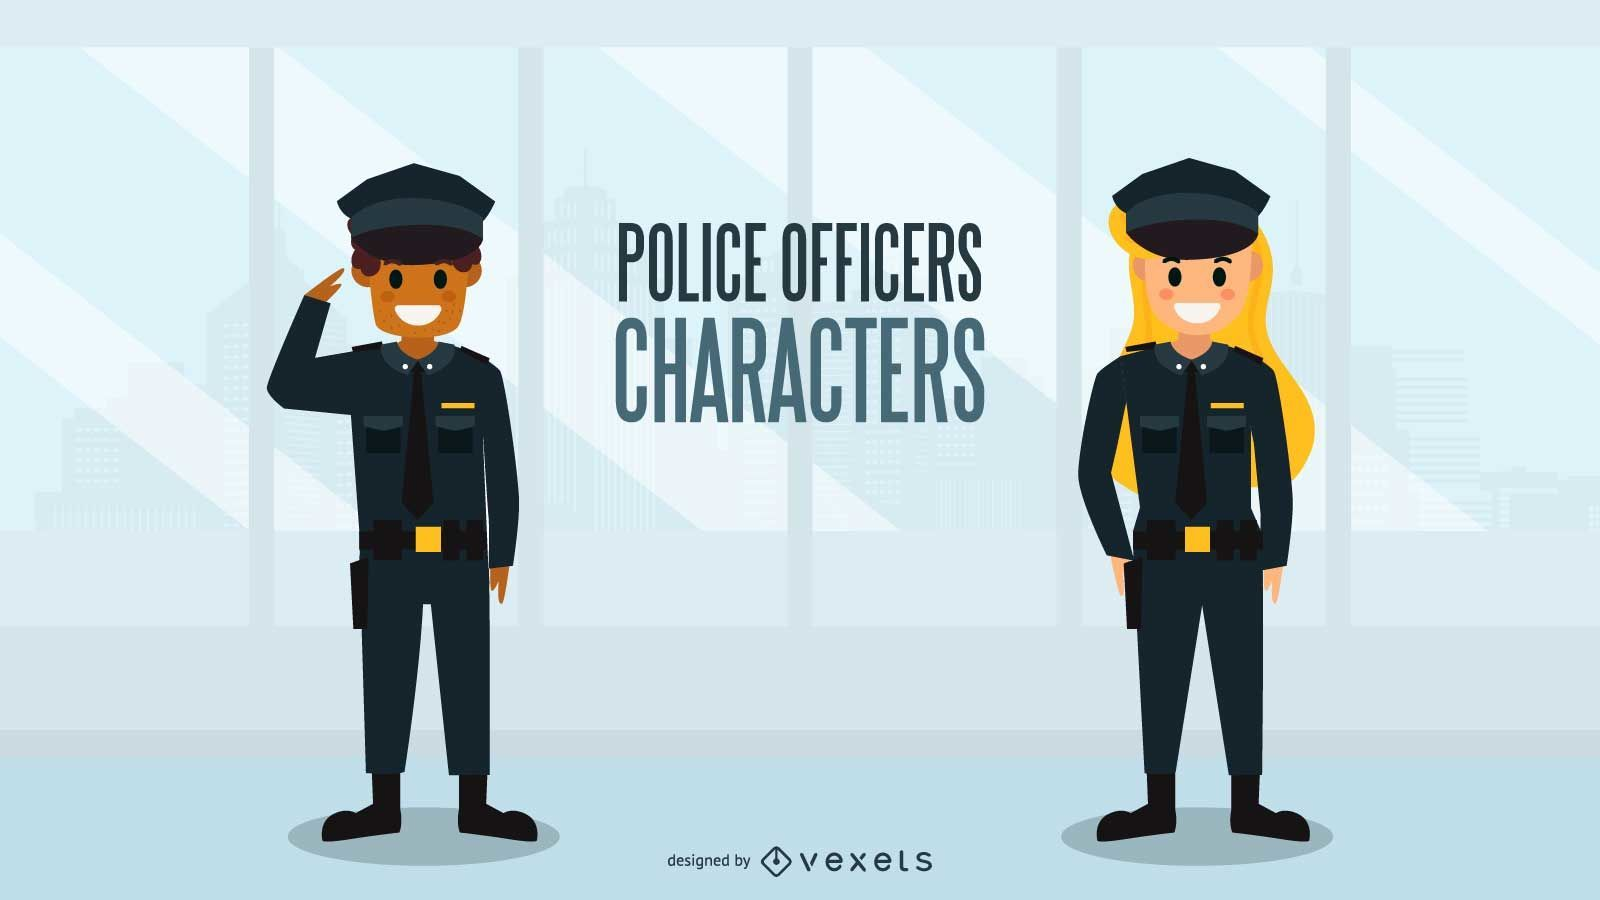 Police Officers Characters